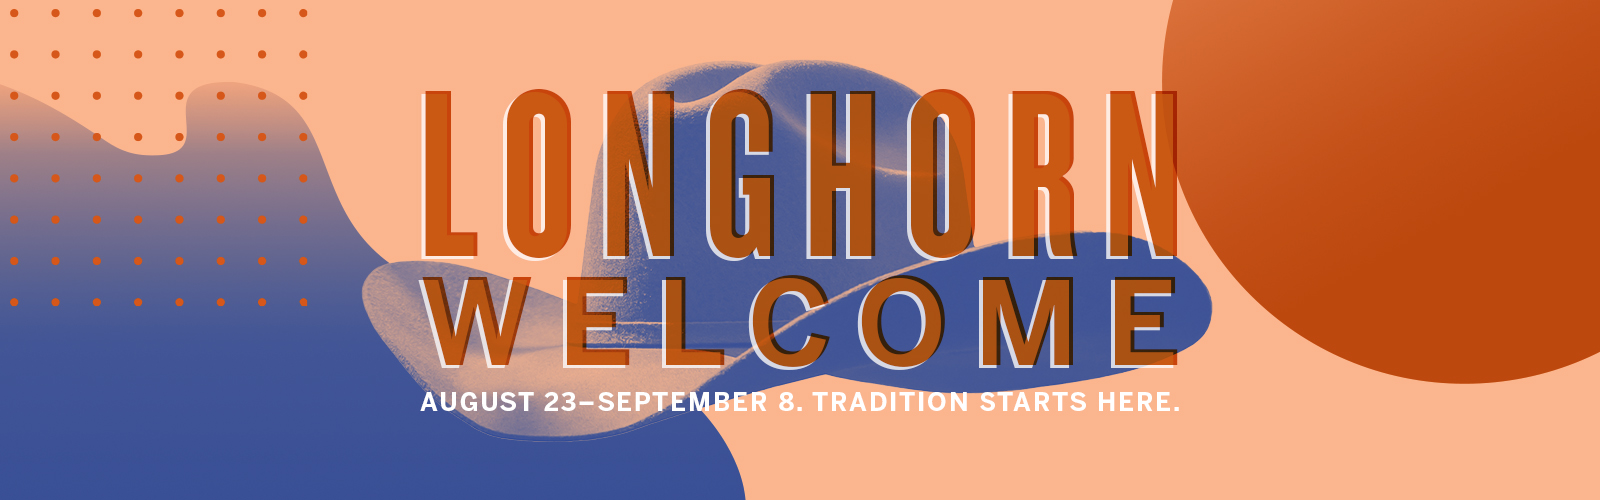 2019 Longhorn Welcome Logo with cowboy hat